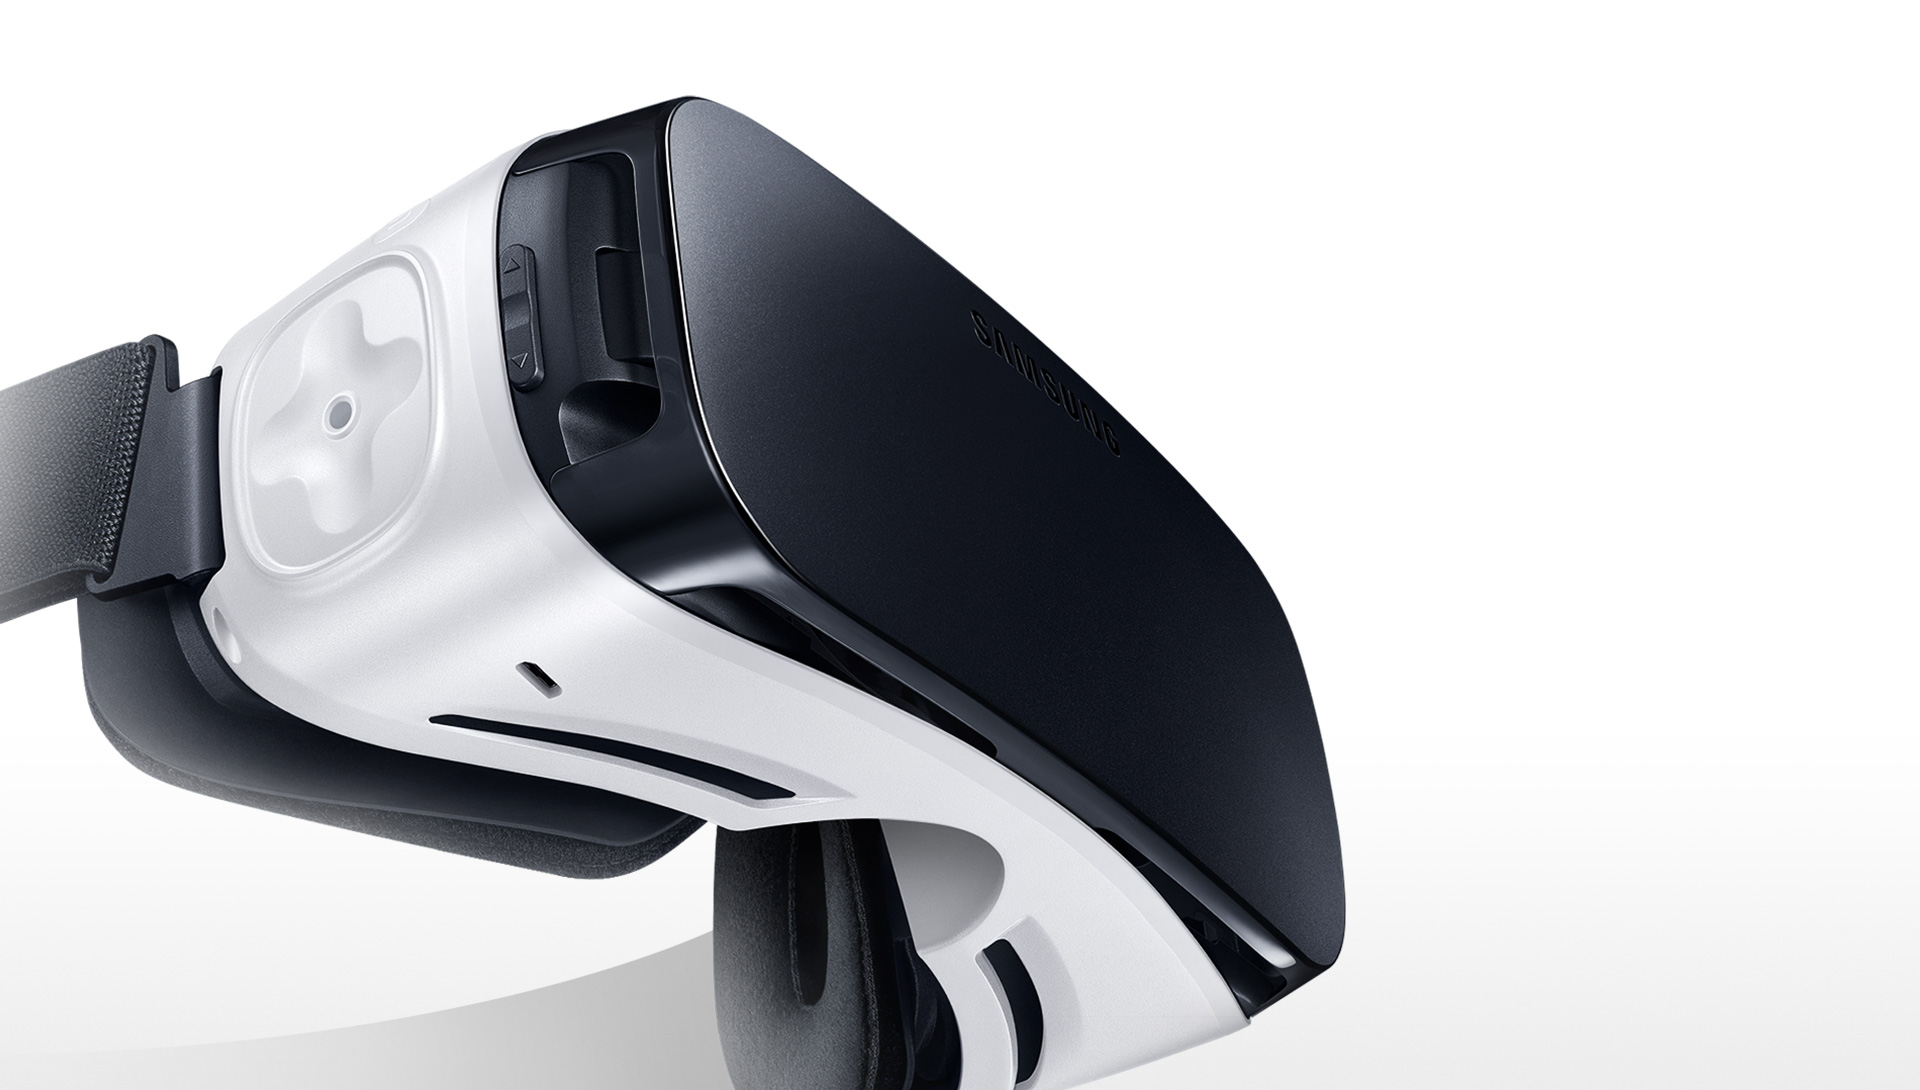 Difference Between Oculus Rift and Samsung Gear